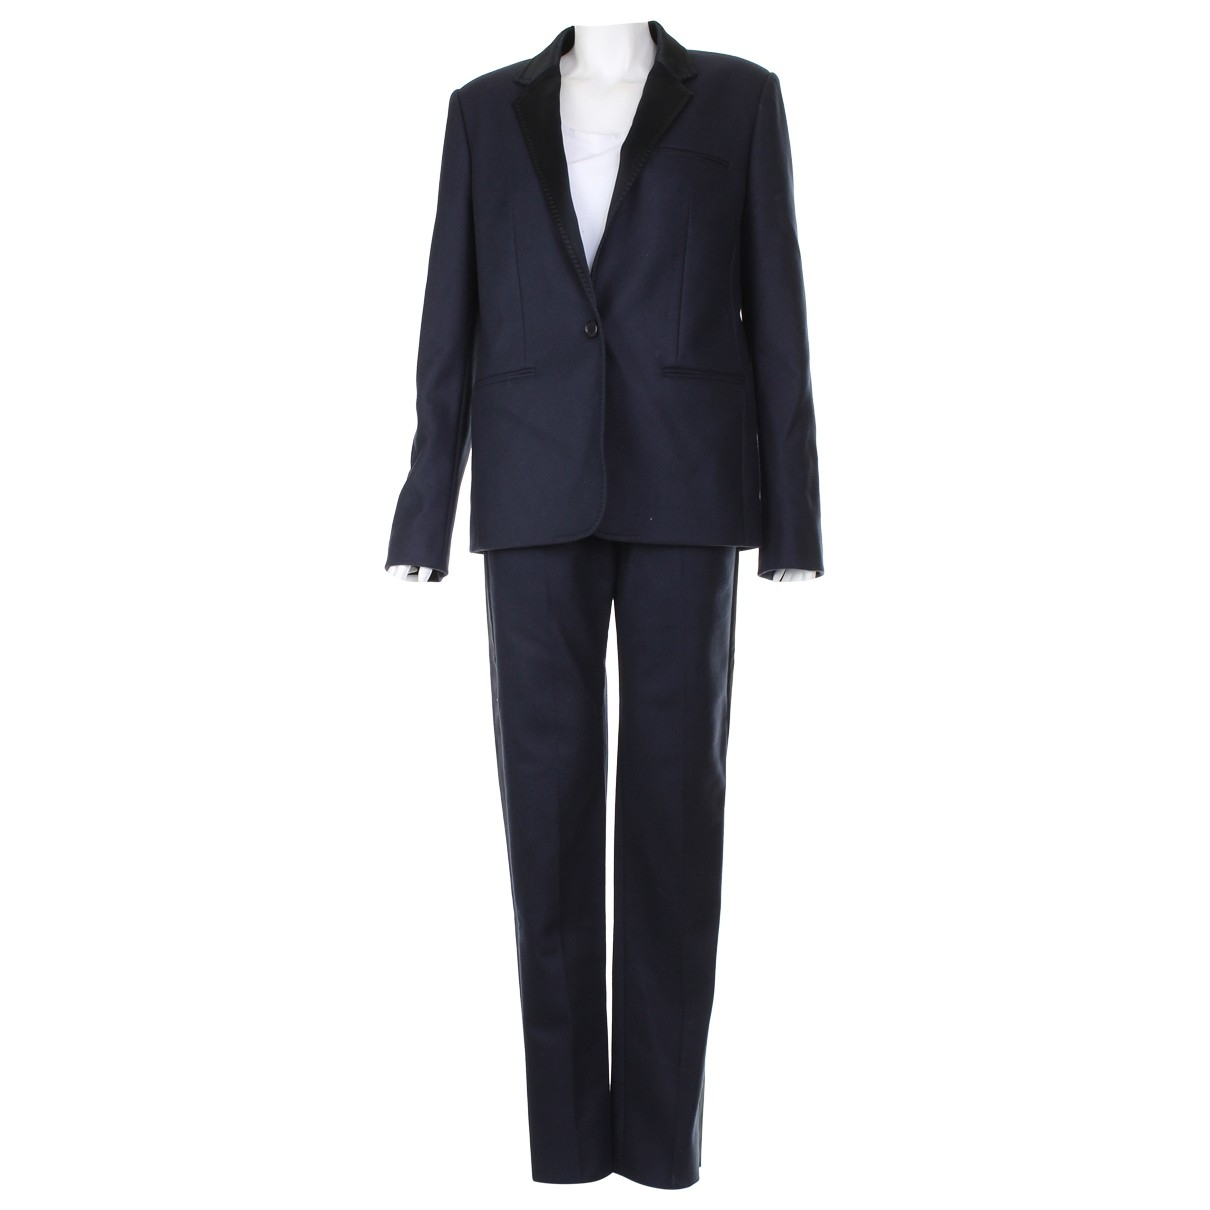 Mulberry \N Navy Wool jacket for Women One Size UK